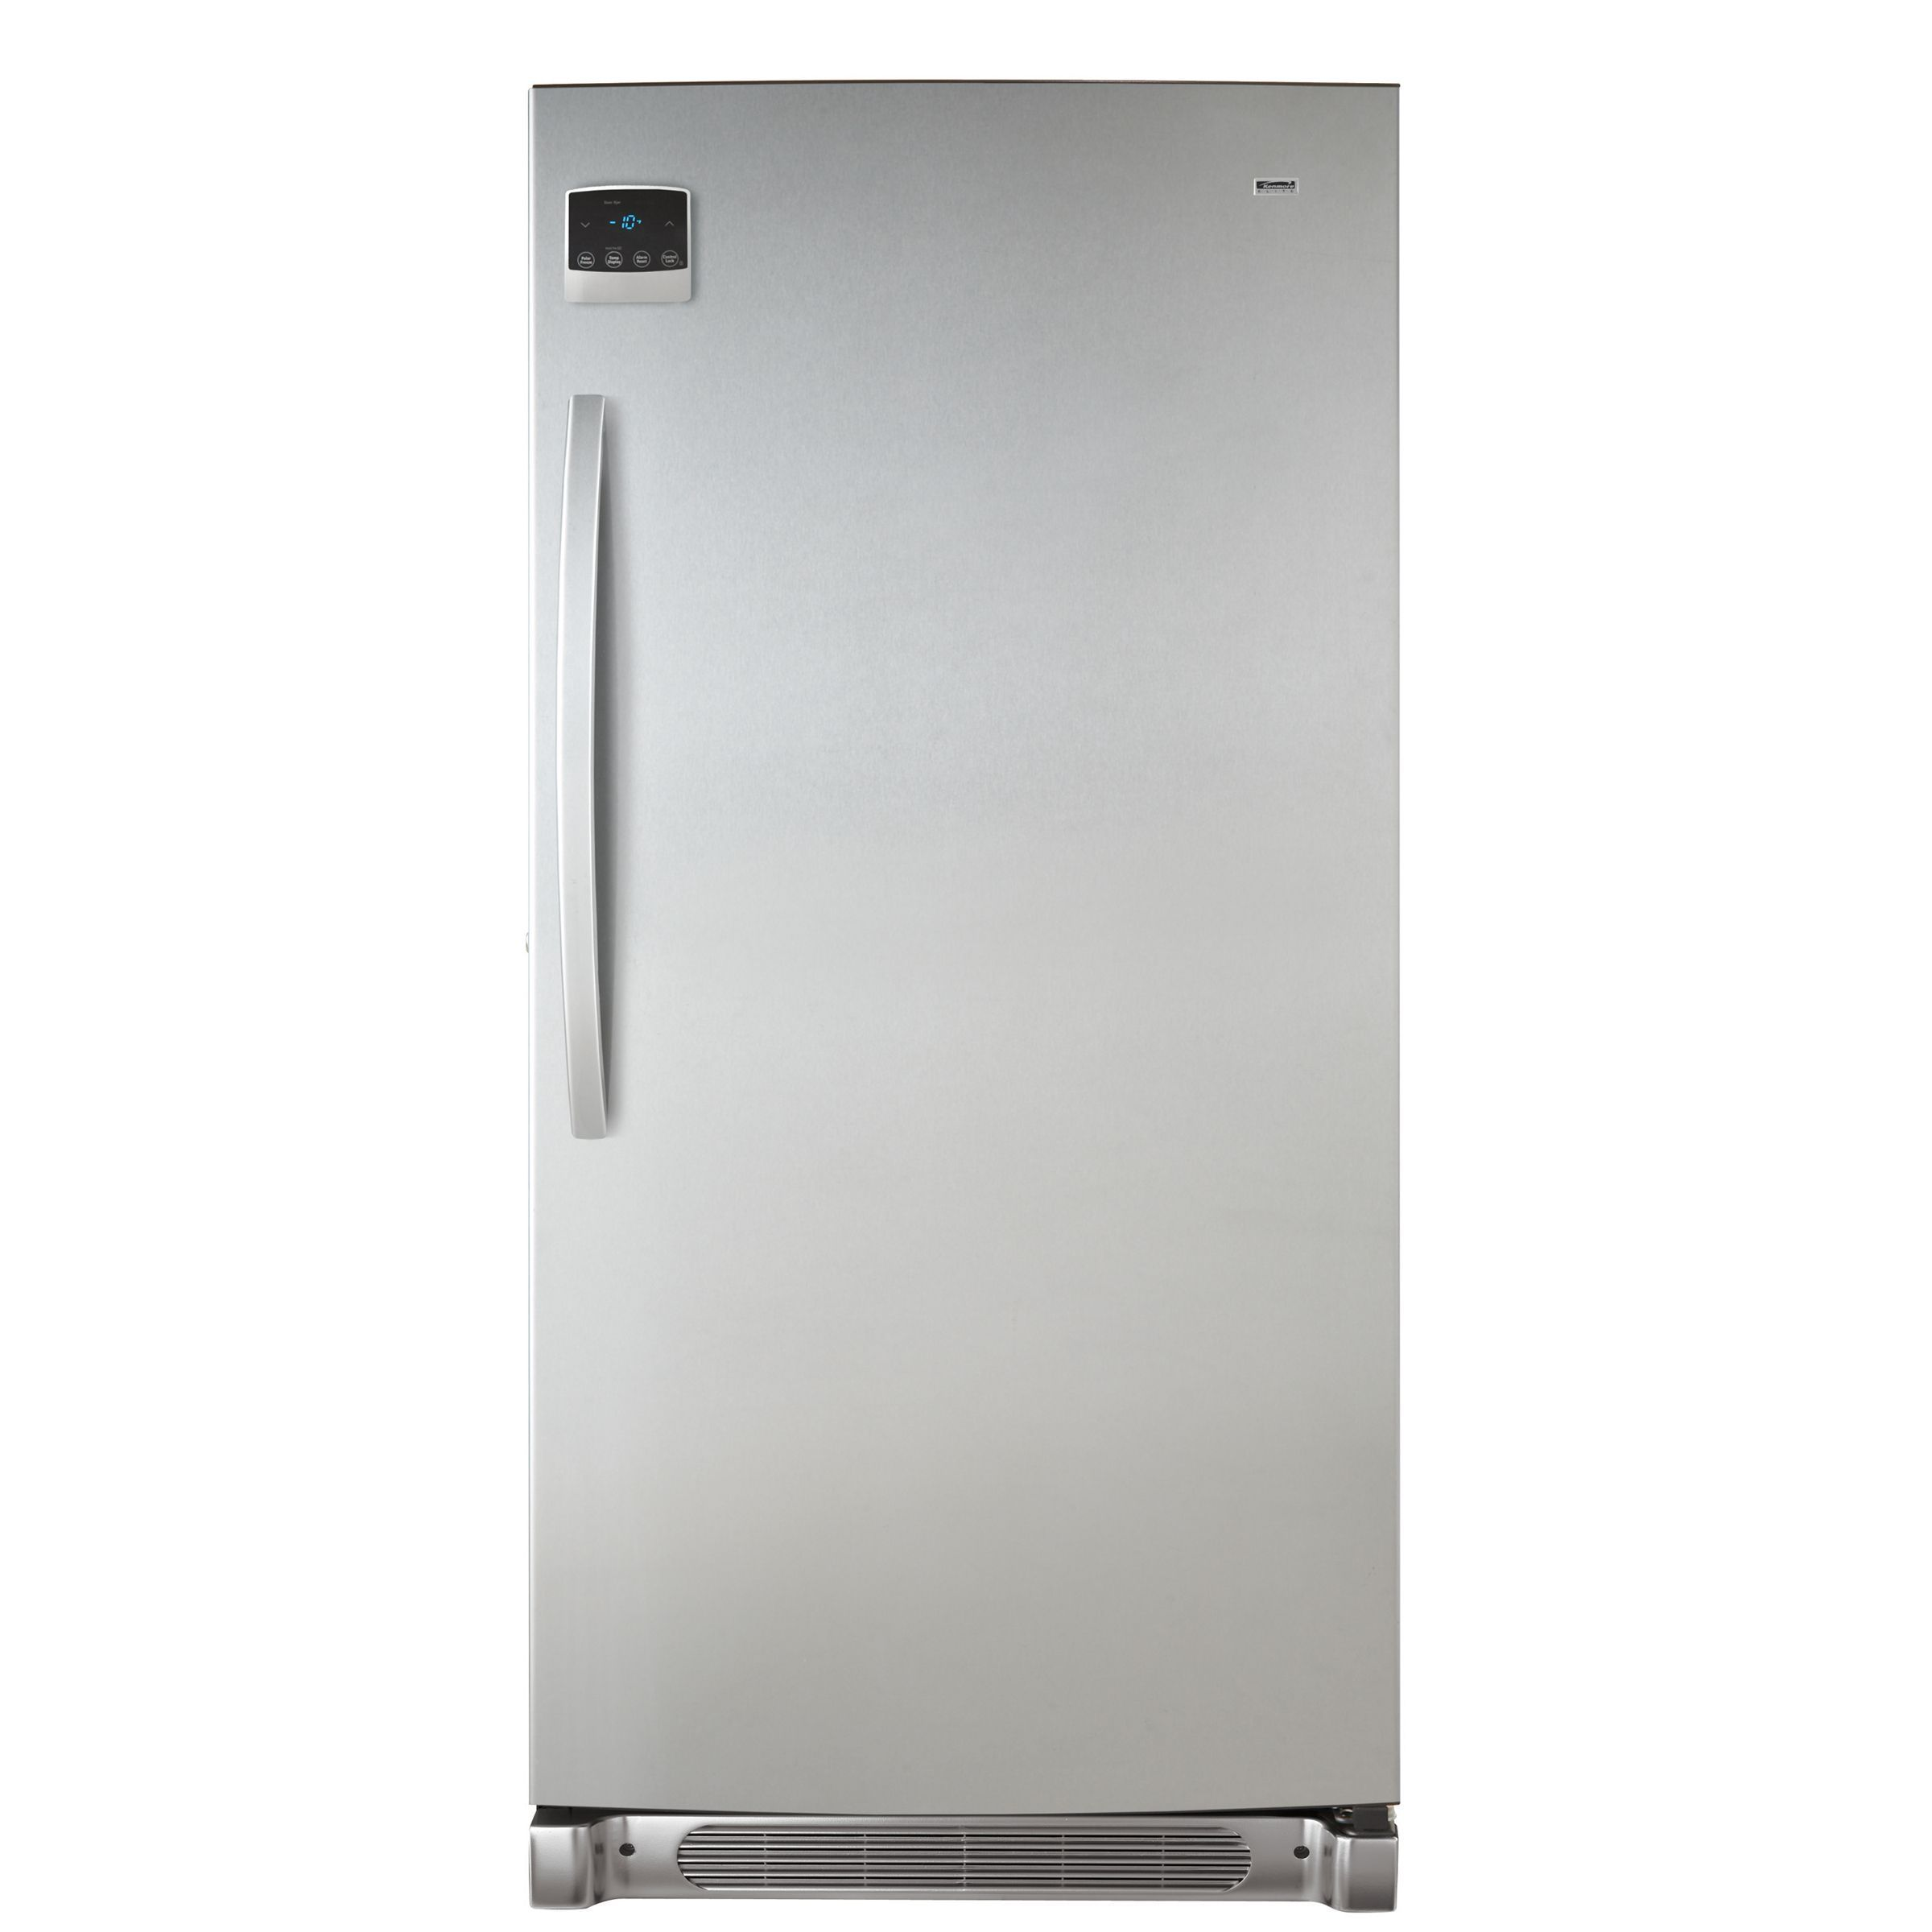 Check Out Kenmore Elite 20 6 Cu Ft Upright Freezer In Stainless Upright Freezer Kenmore Elite Freezer